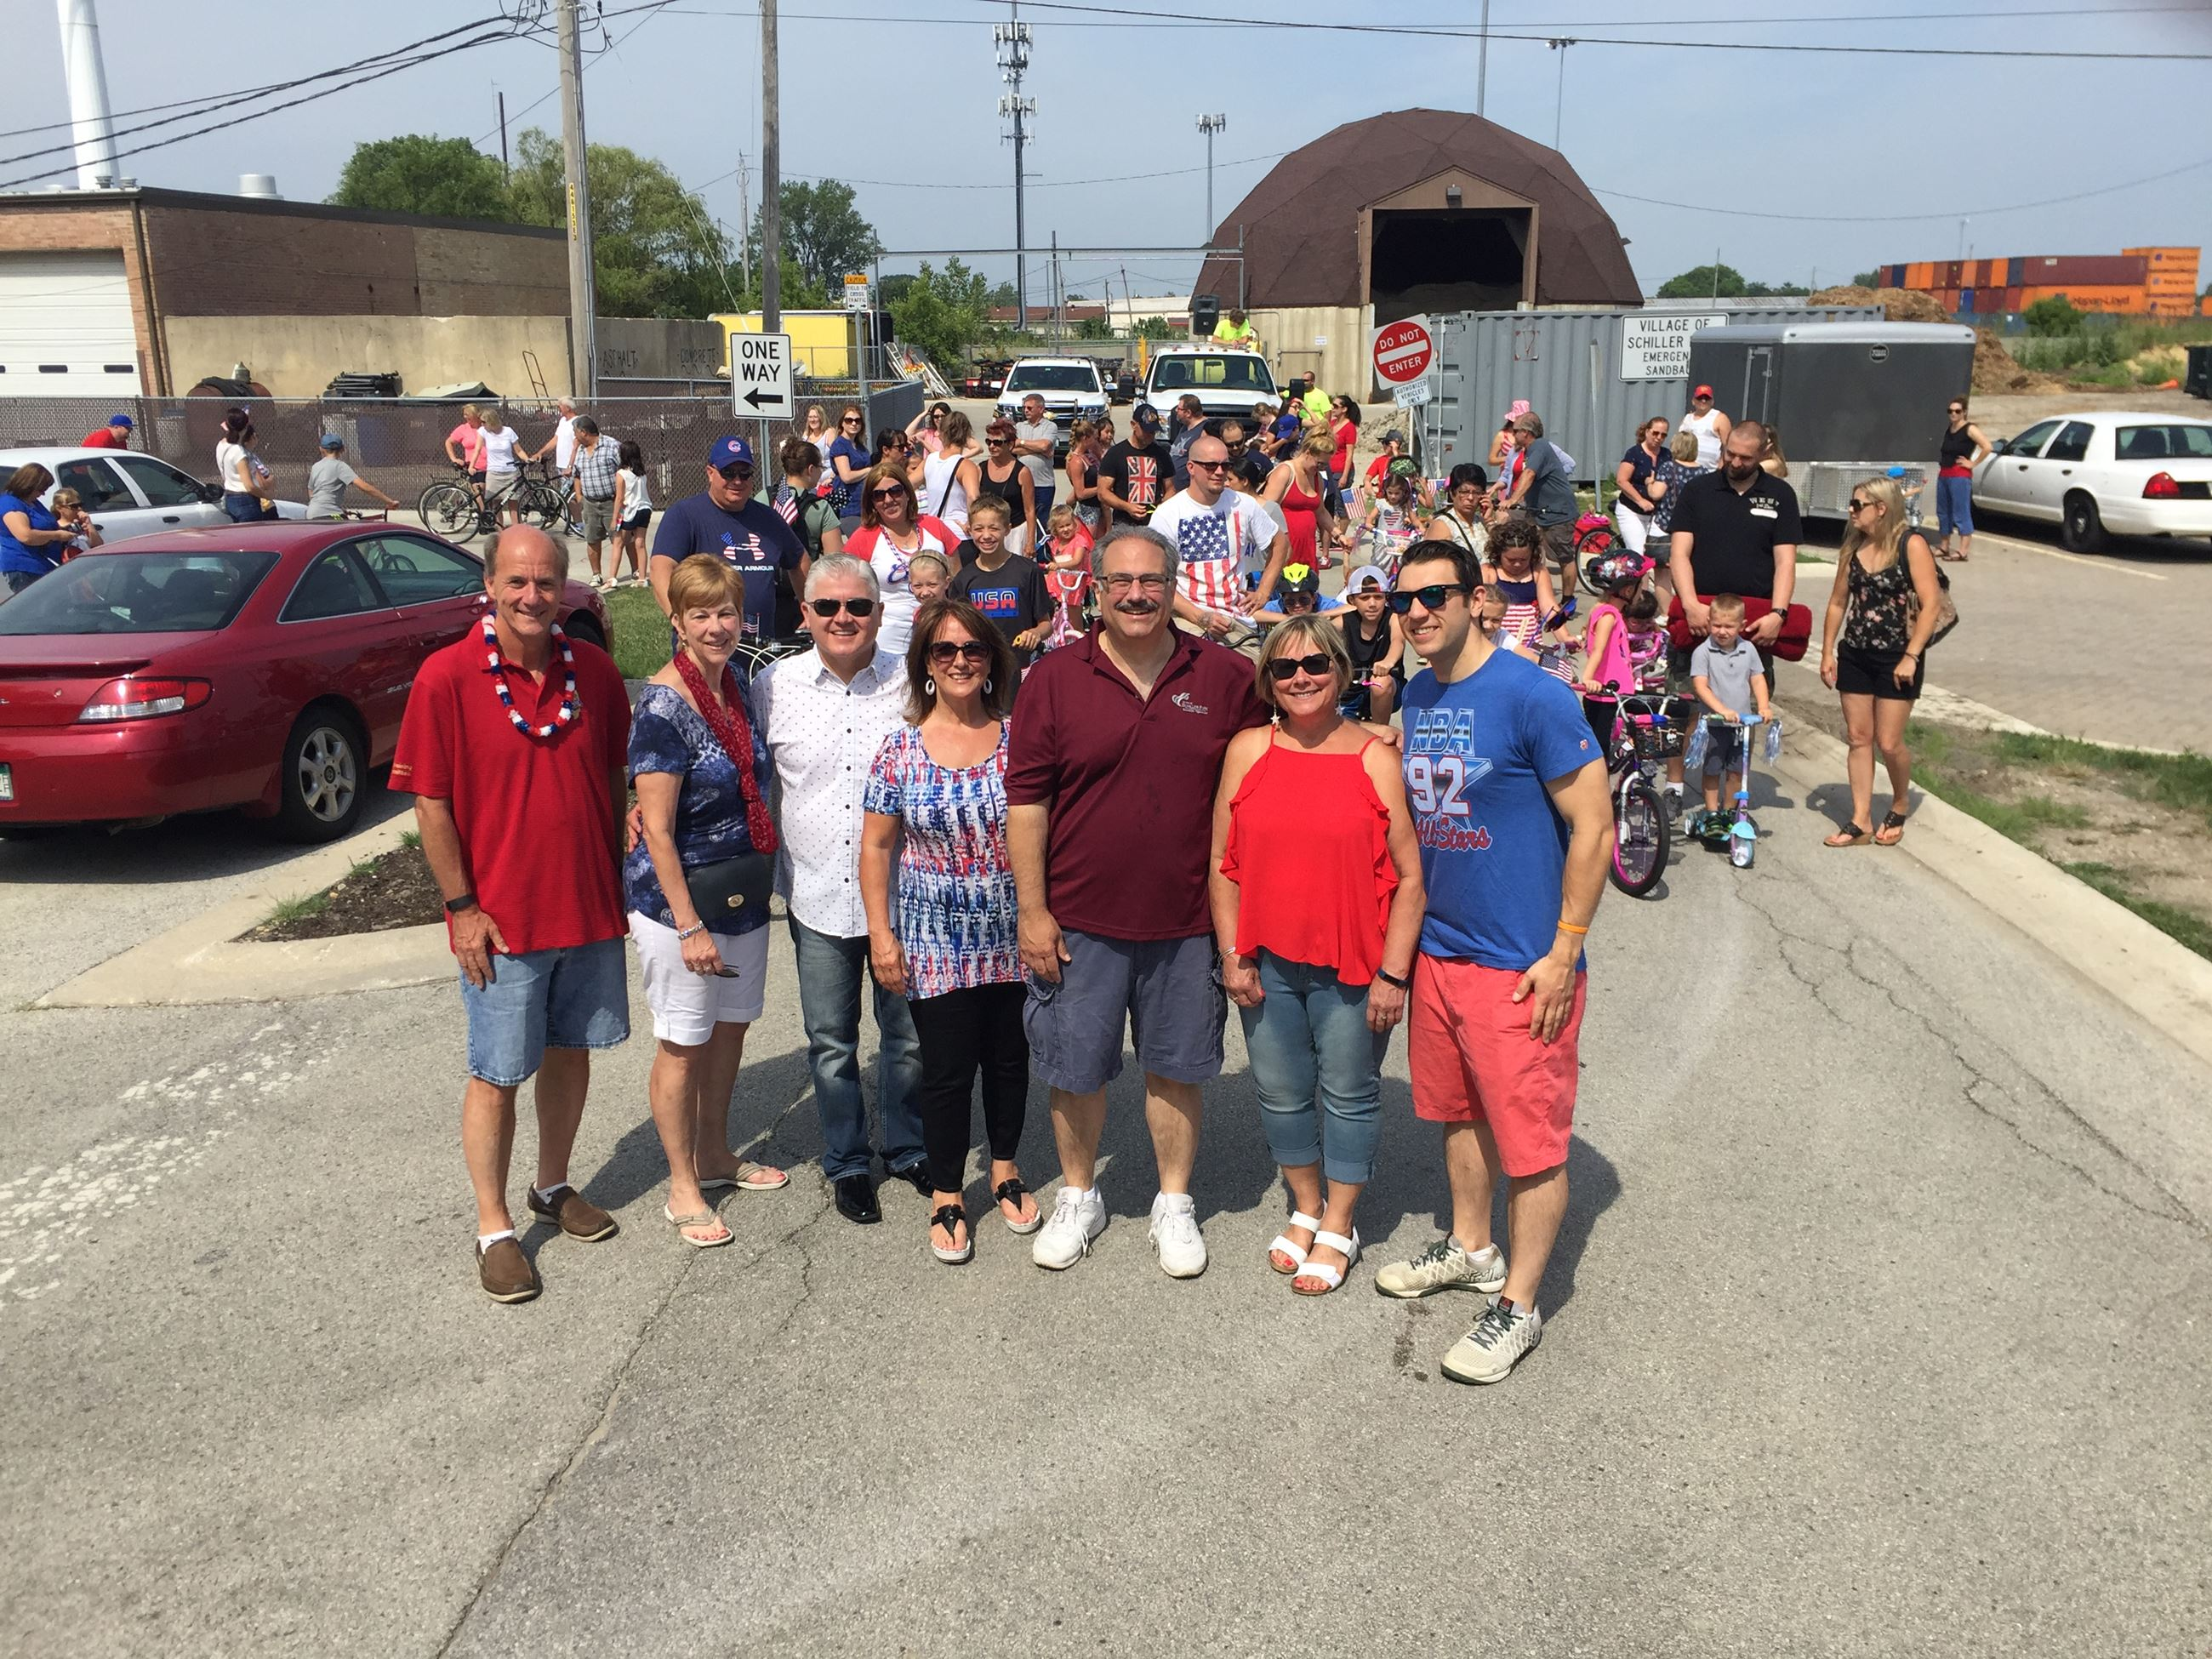 Village Board Photo at Parade-Picnic 2 - July 2017